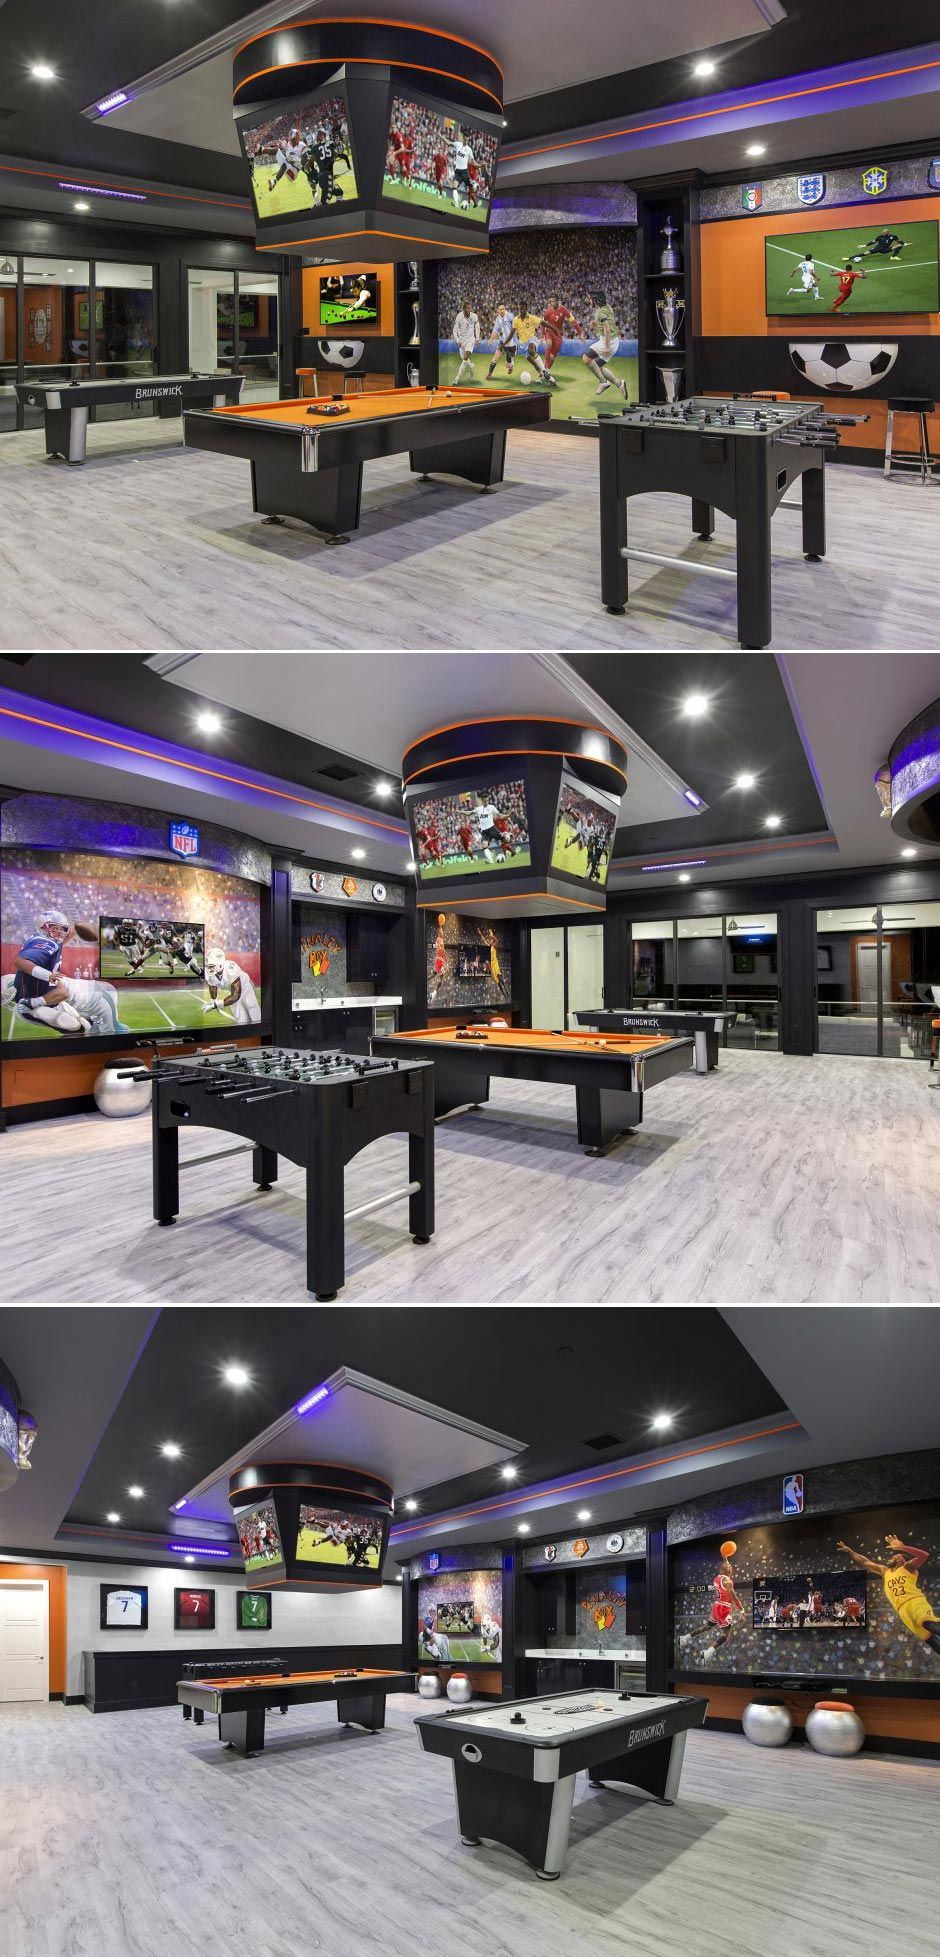 Basement Game Room Designs: Love This Game Area! Found In An Orlando Vacation Rental